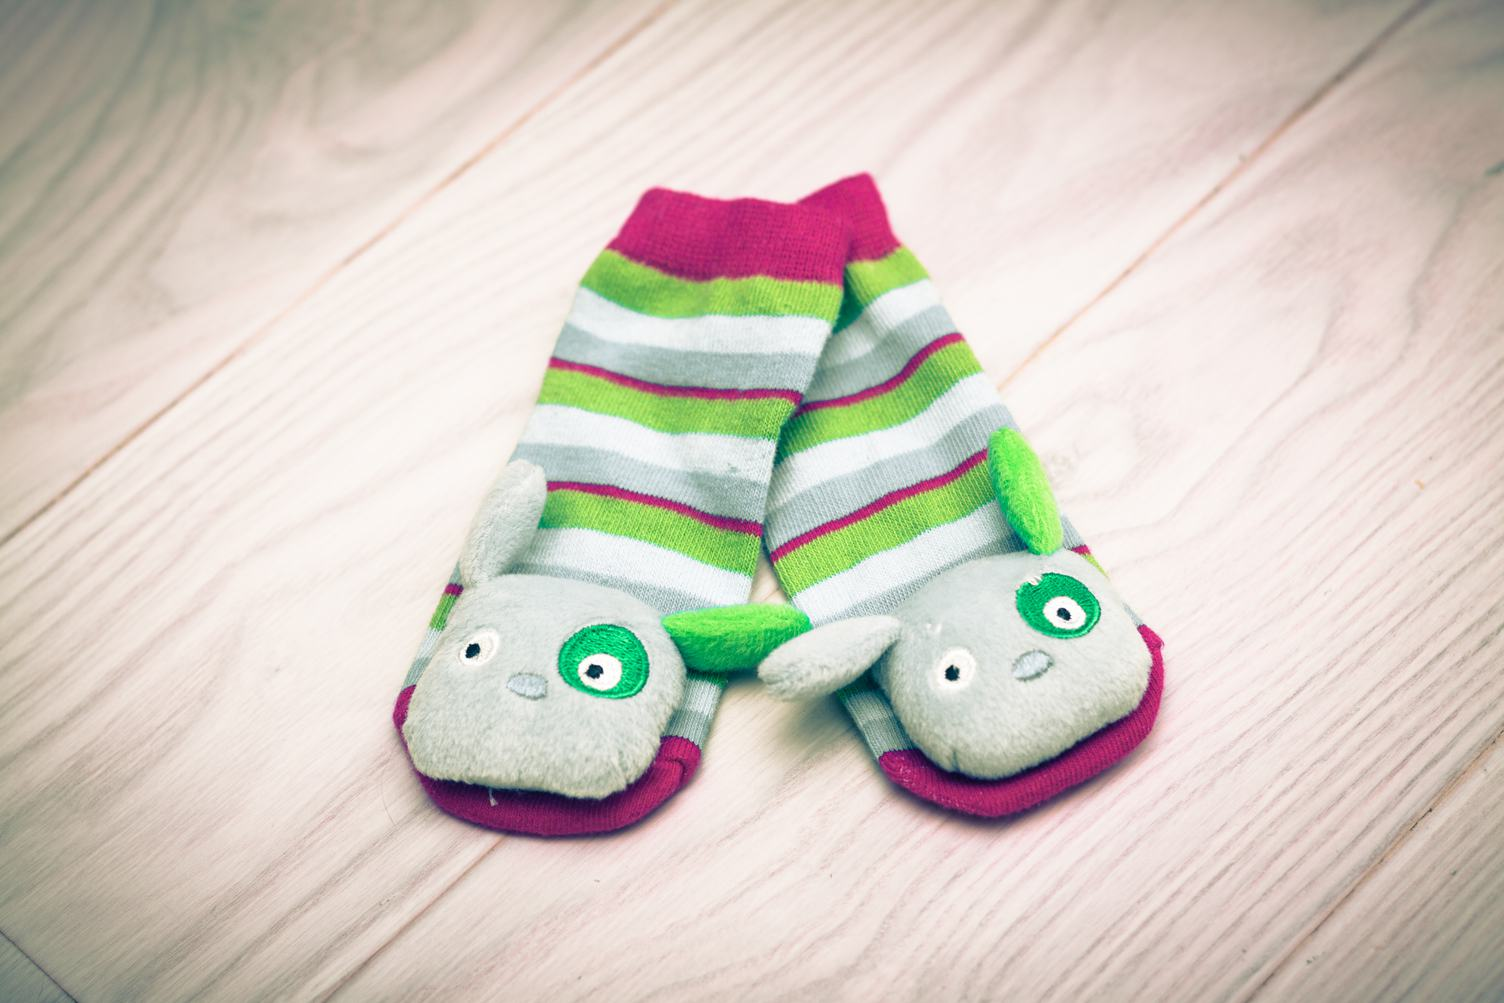 Baby Striped Socks on White Wooden Floor